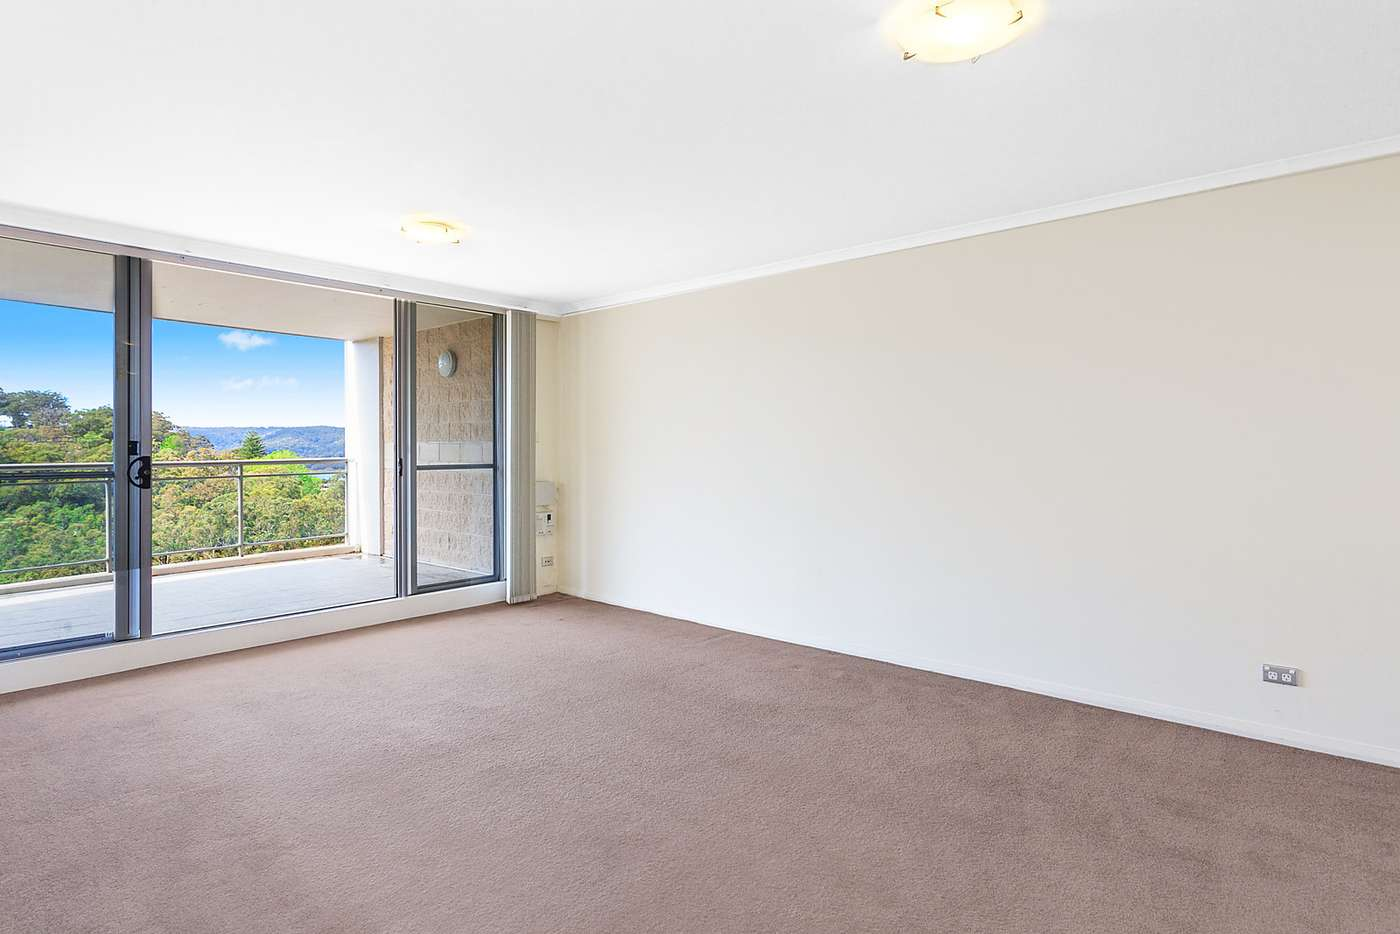 Fifth view of Homely apartment listing, Level 7/274/80 John Whiteway Drive, Gosford NSW 2250